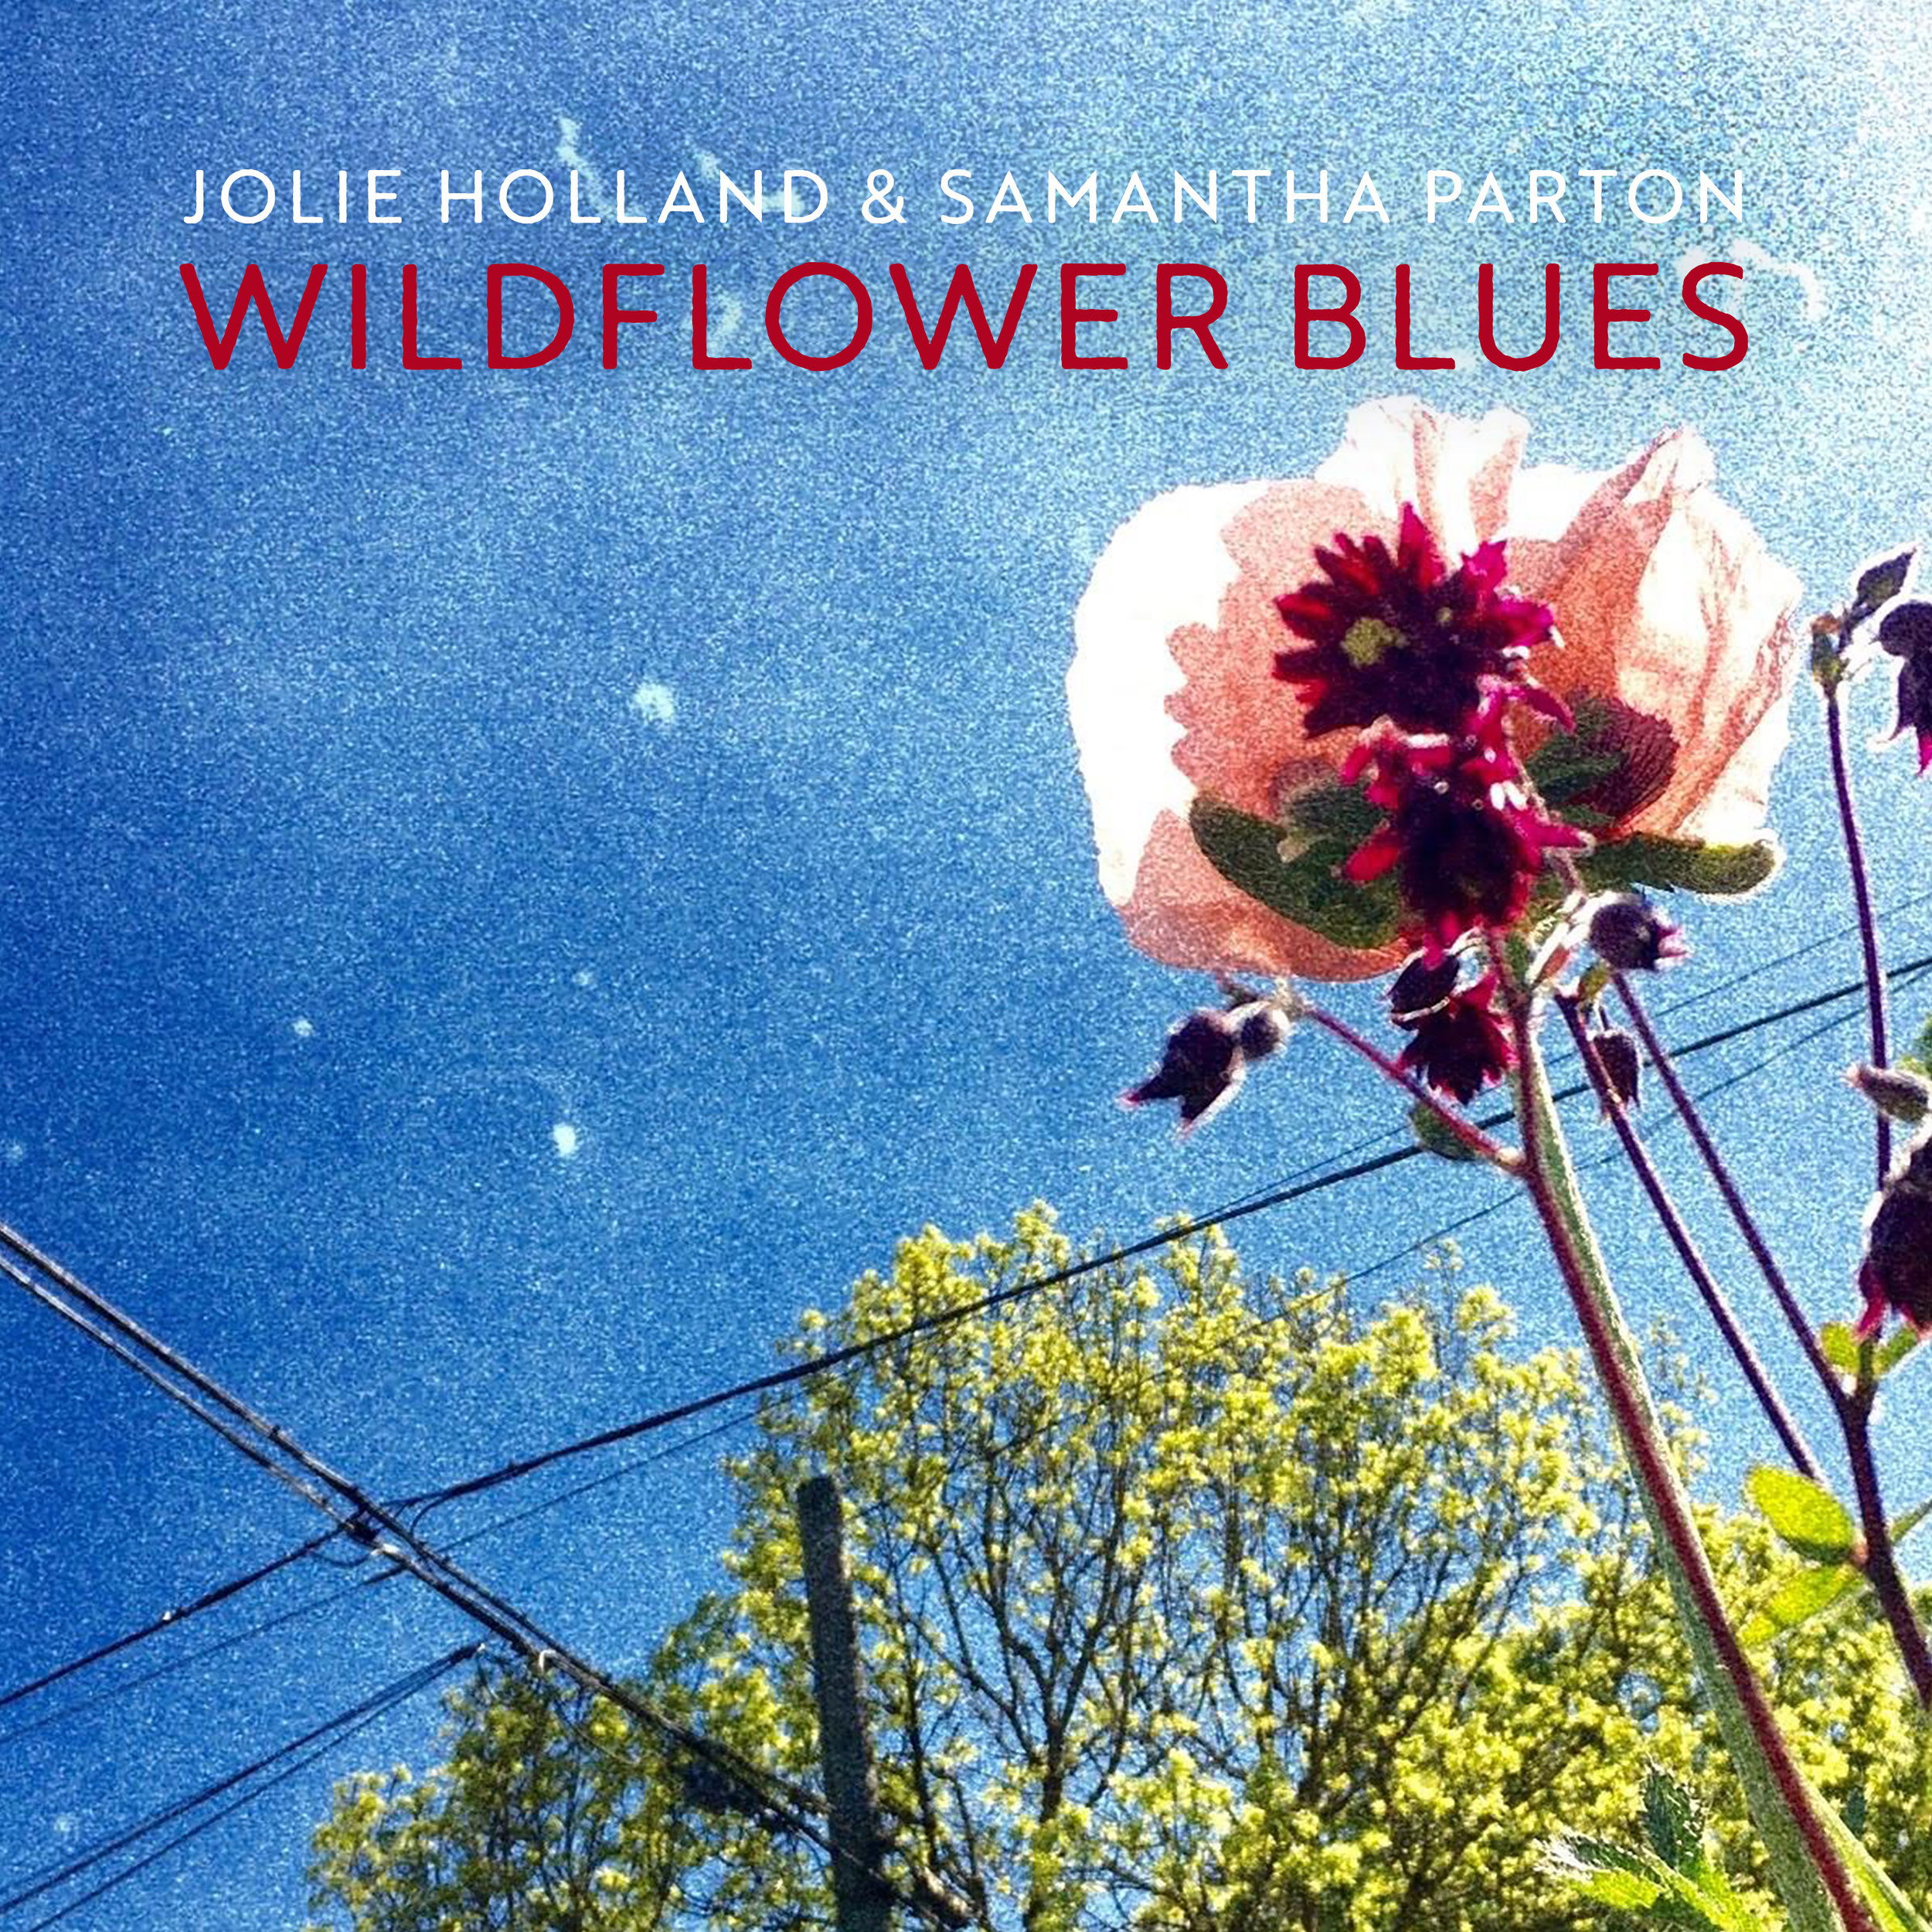 57935-Jolie-Sam_Wildflower_20Blues_20Cover_FINAL (2).jpeg